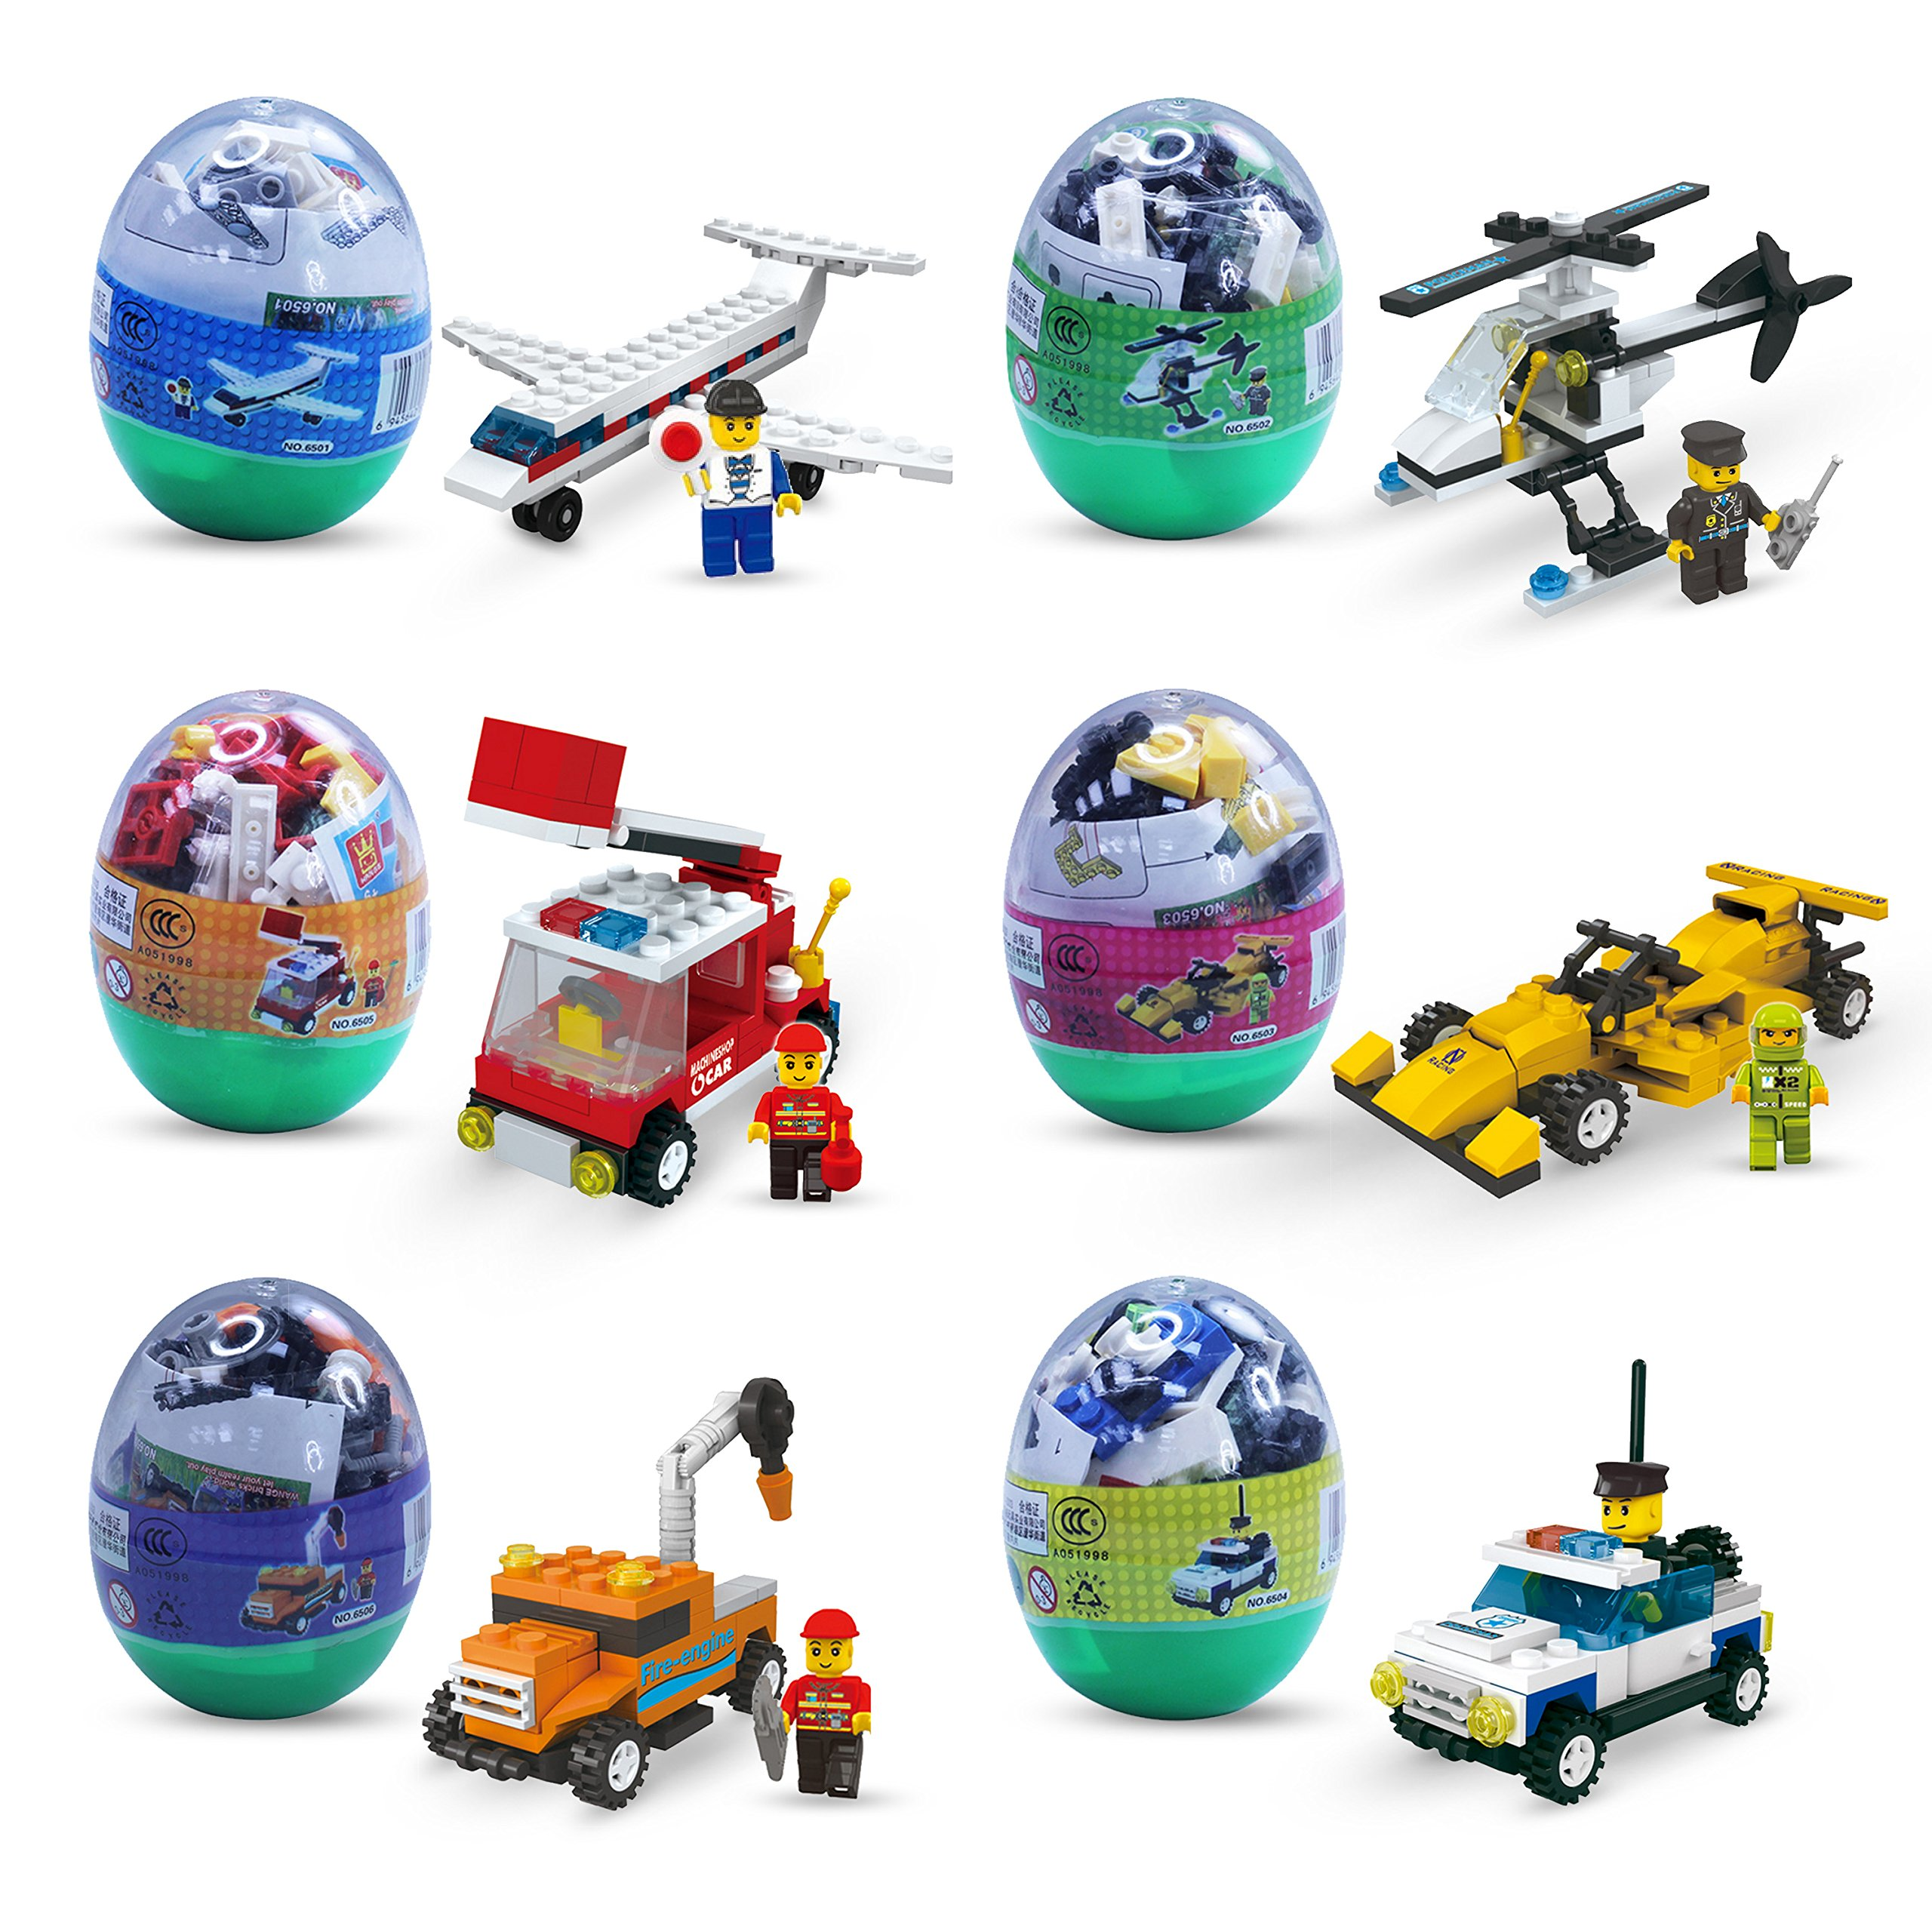 Eggs Building Toys For Boys : Easter eggs with toys inside kids gift lego cars trucks